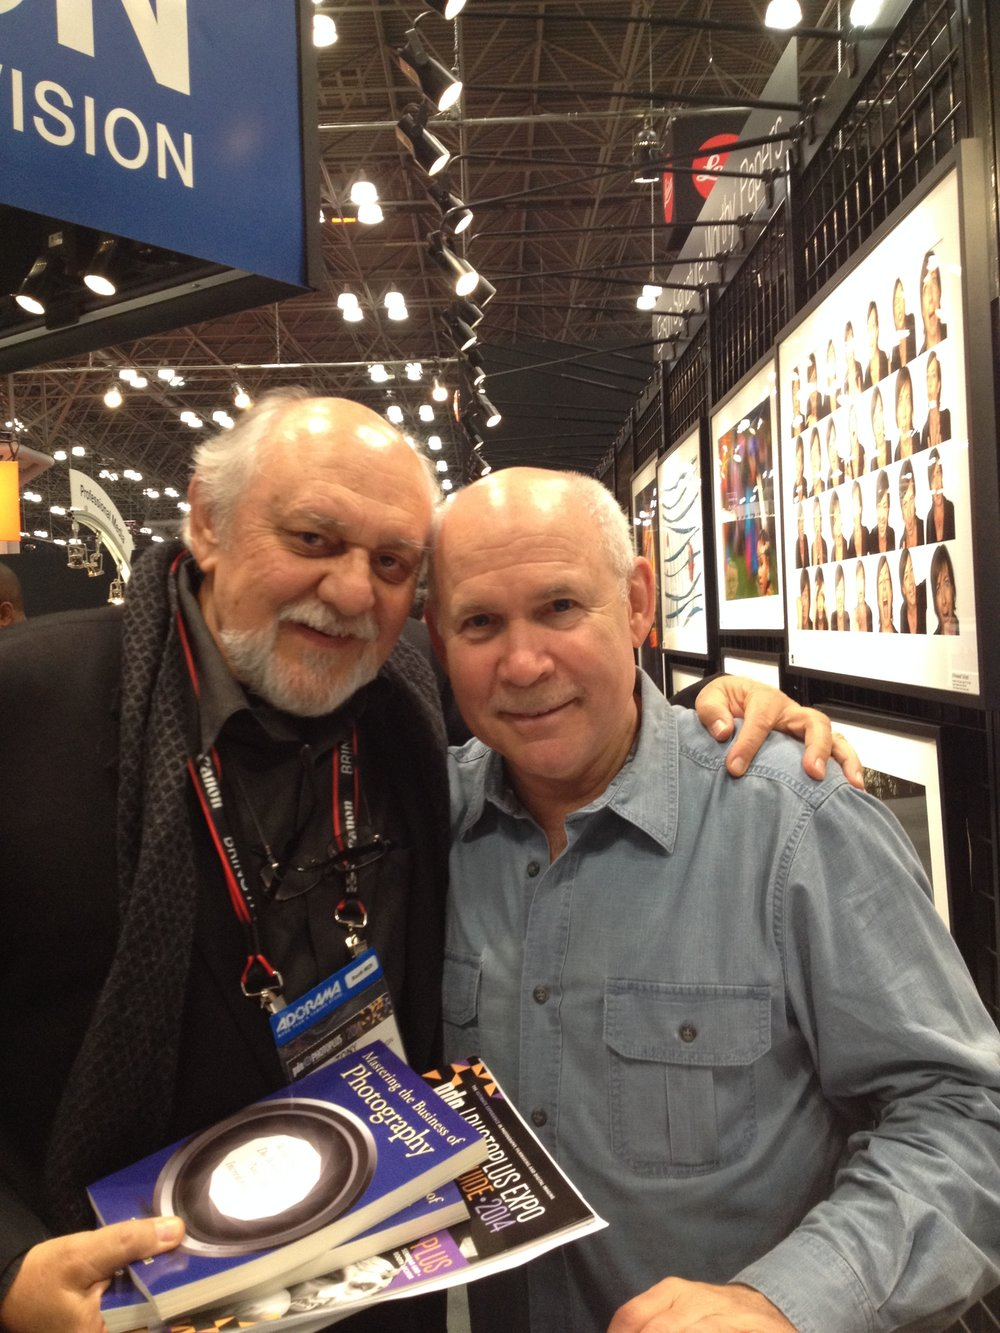 PhotoPlus Expo with Legendary Photographer Steve Mccurry